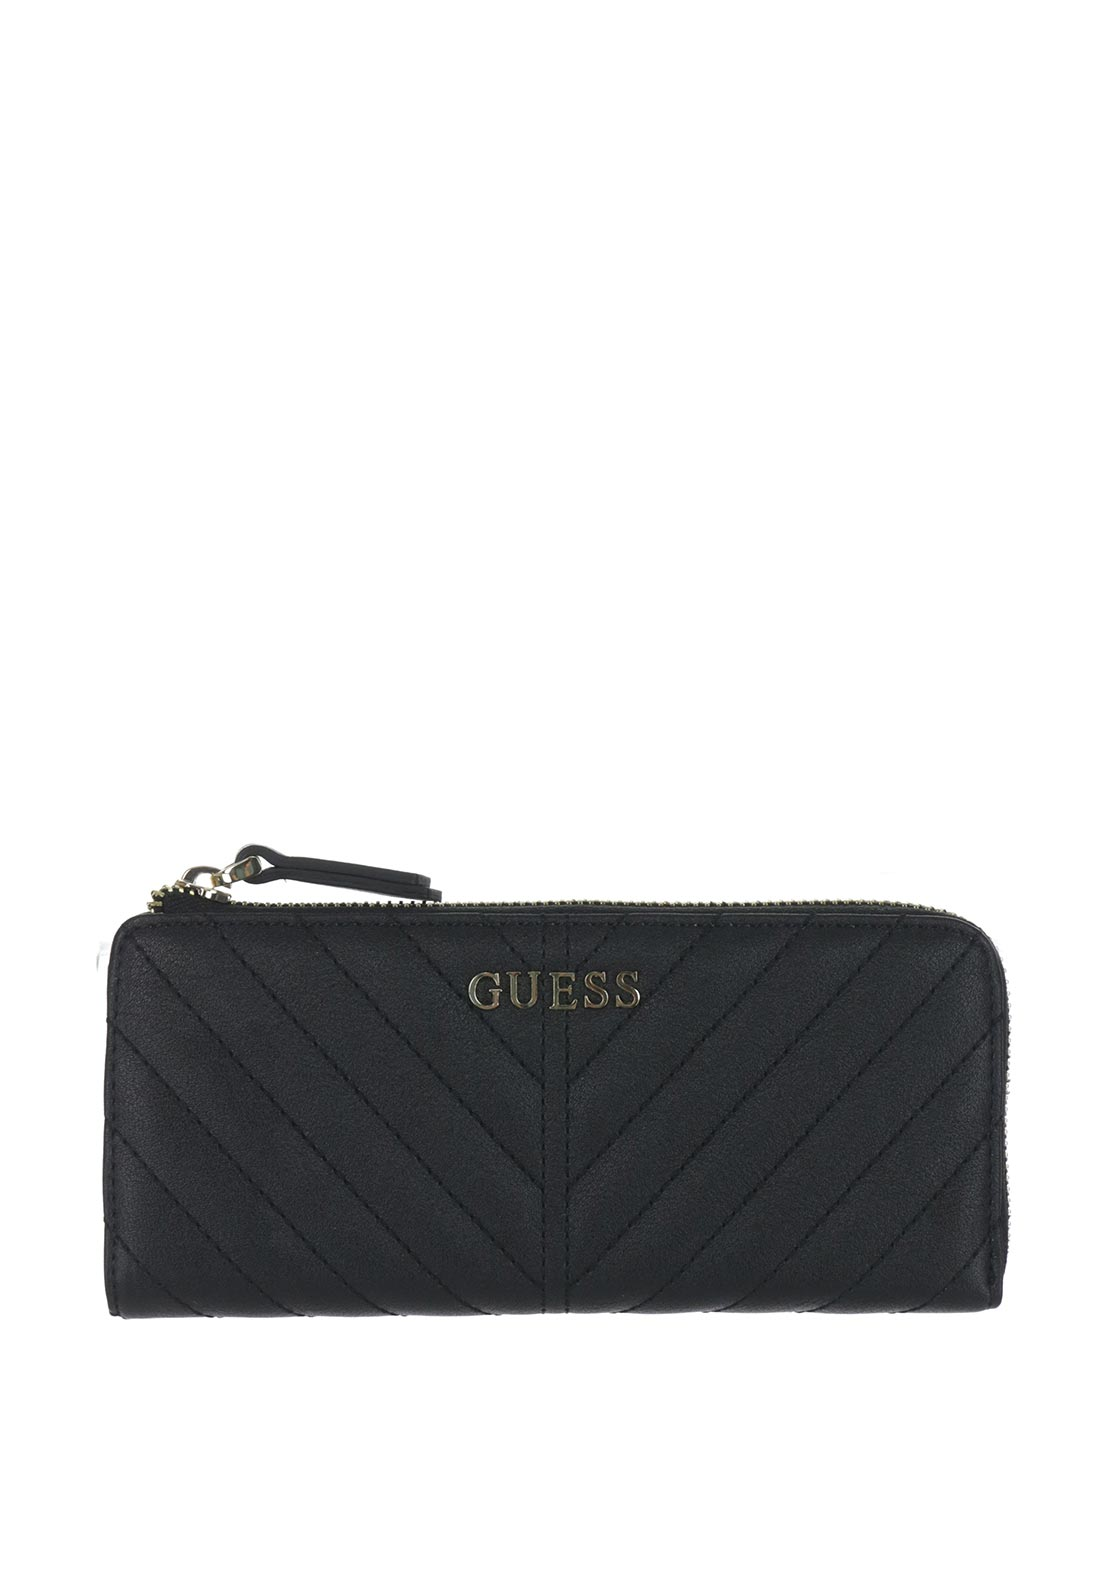 Guess Addison Quilted Medium Zip Around Purse, Black